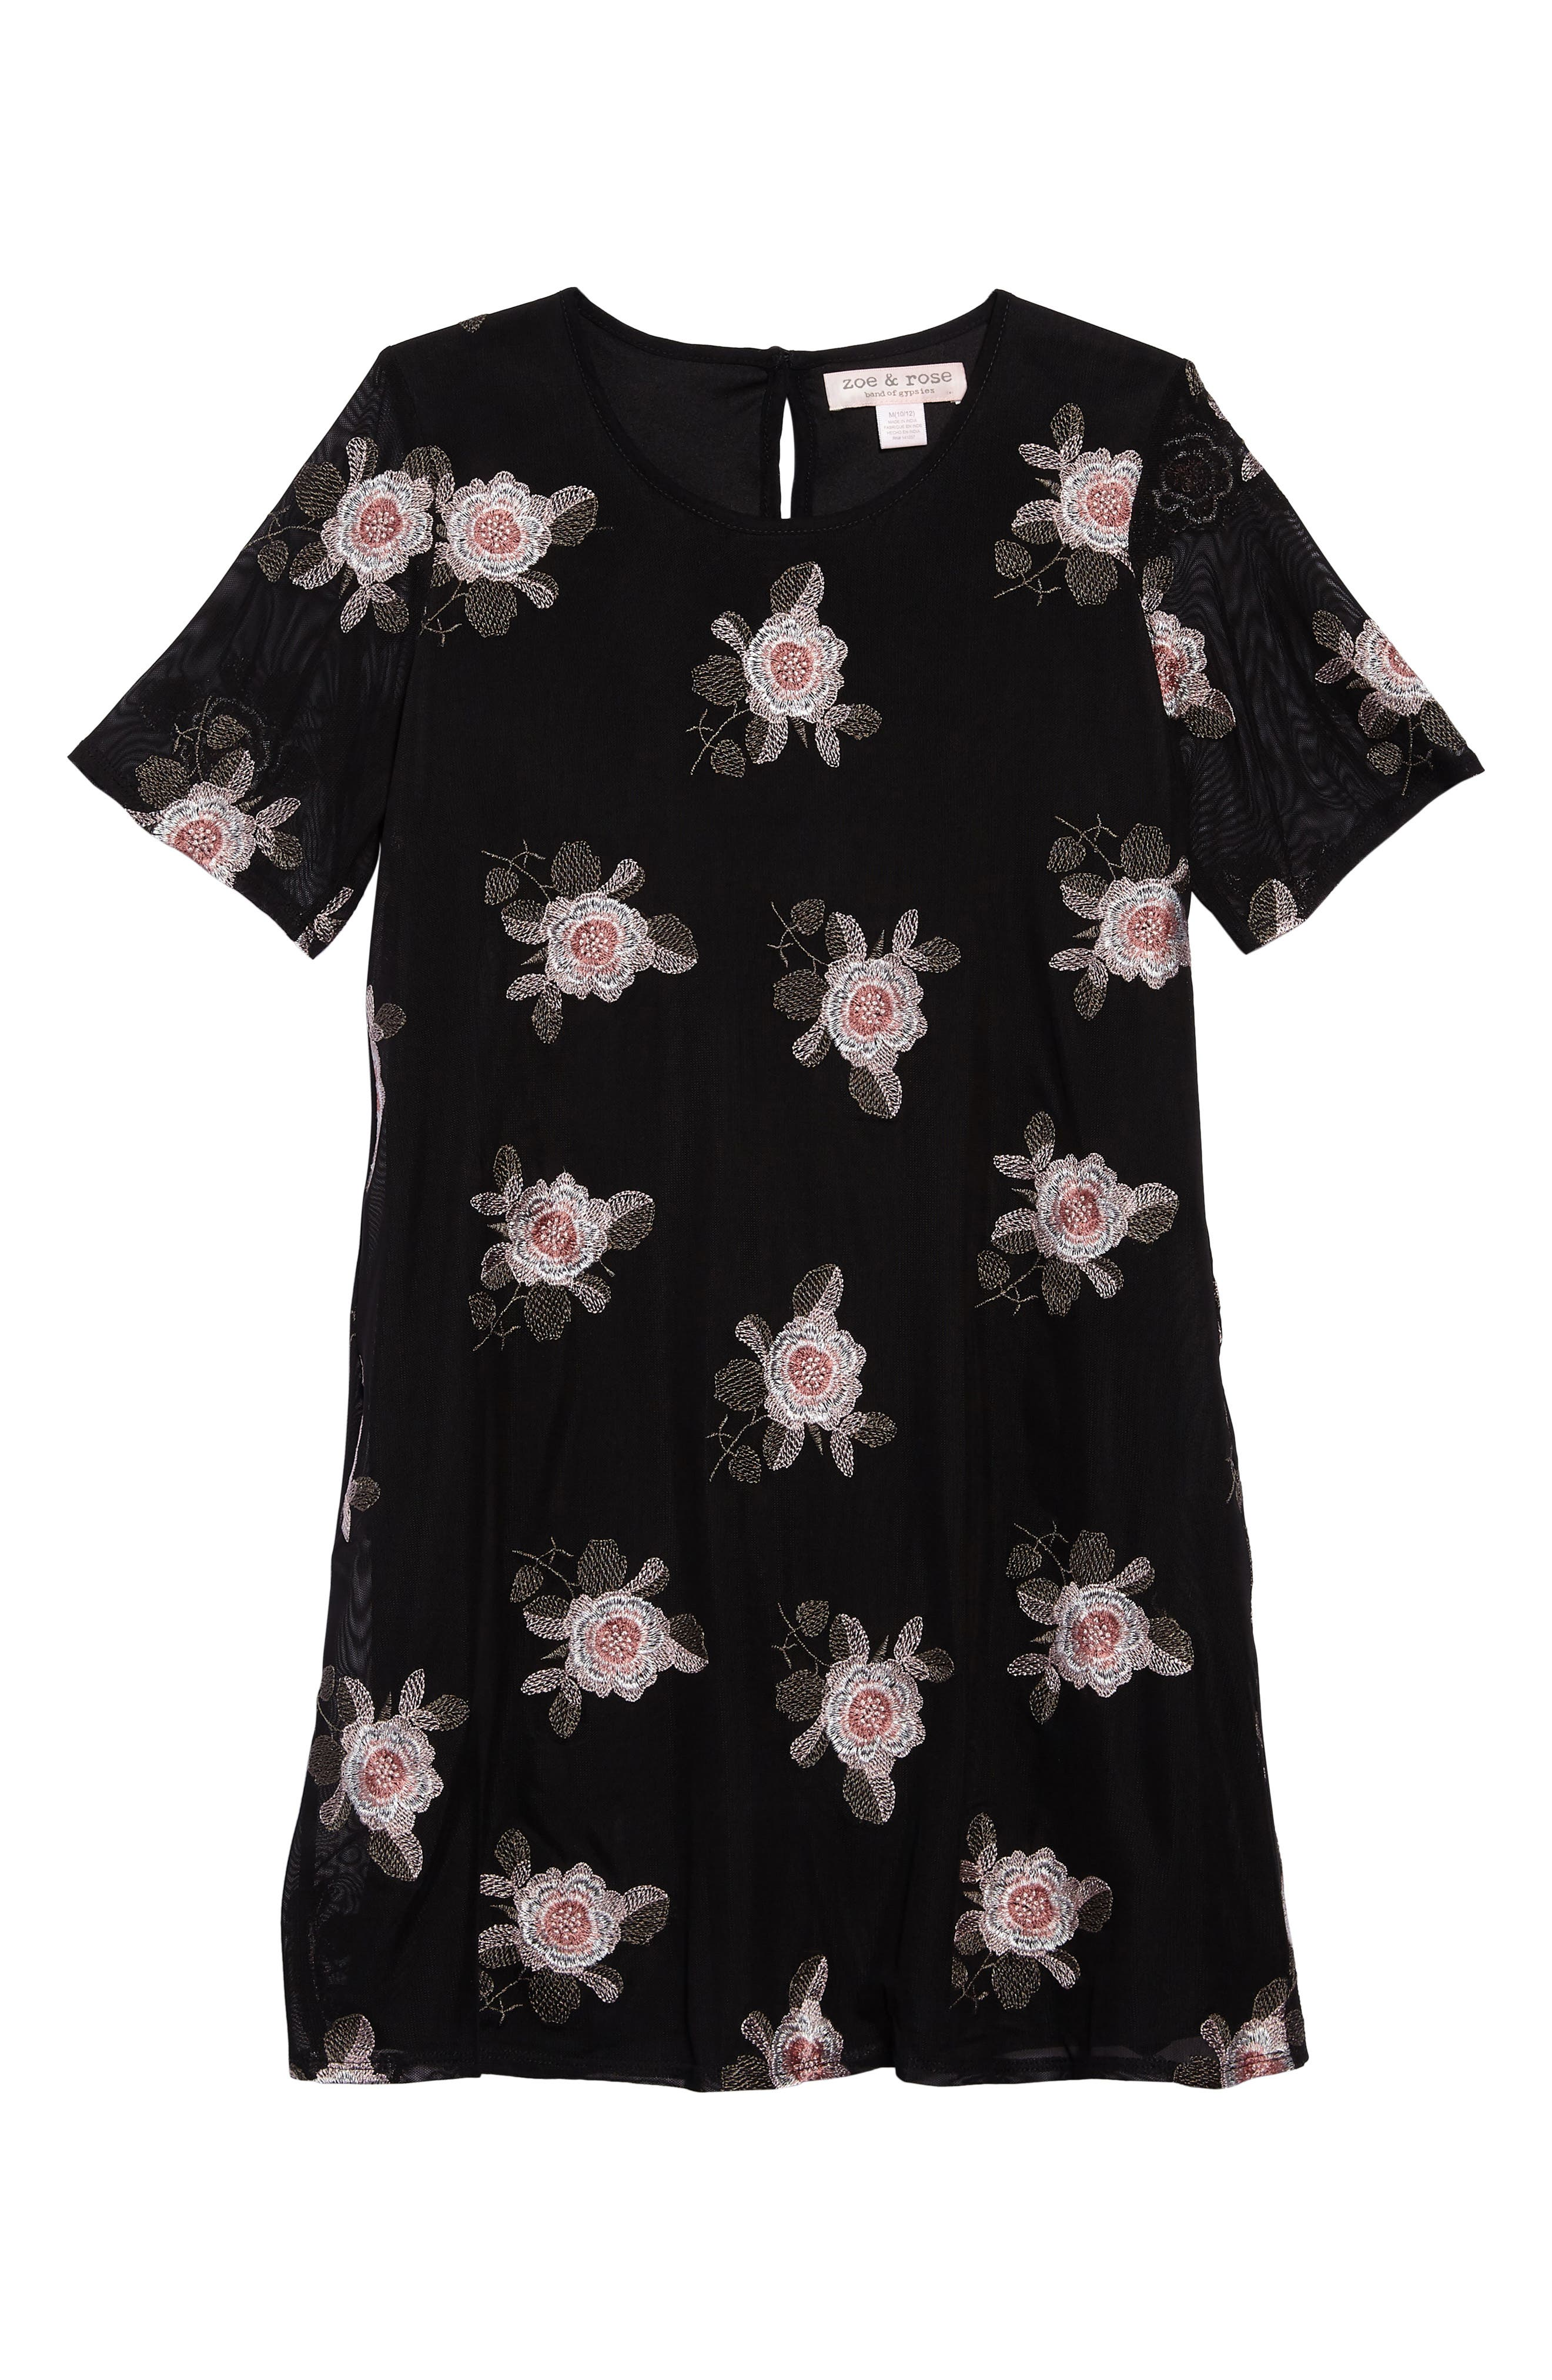 Alternate Image 1 Selected - Zoe and Rose Flower Embroidered Mesh Dress (Big Girls)